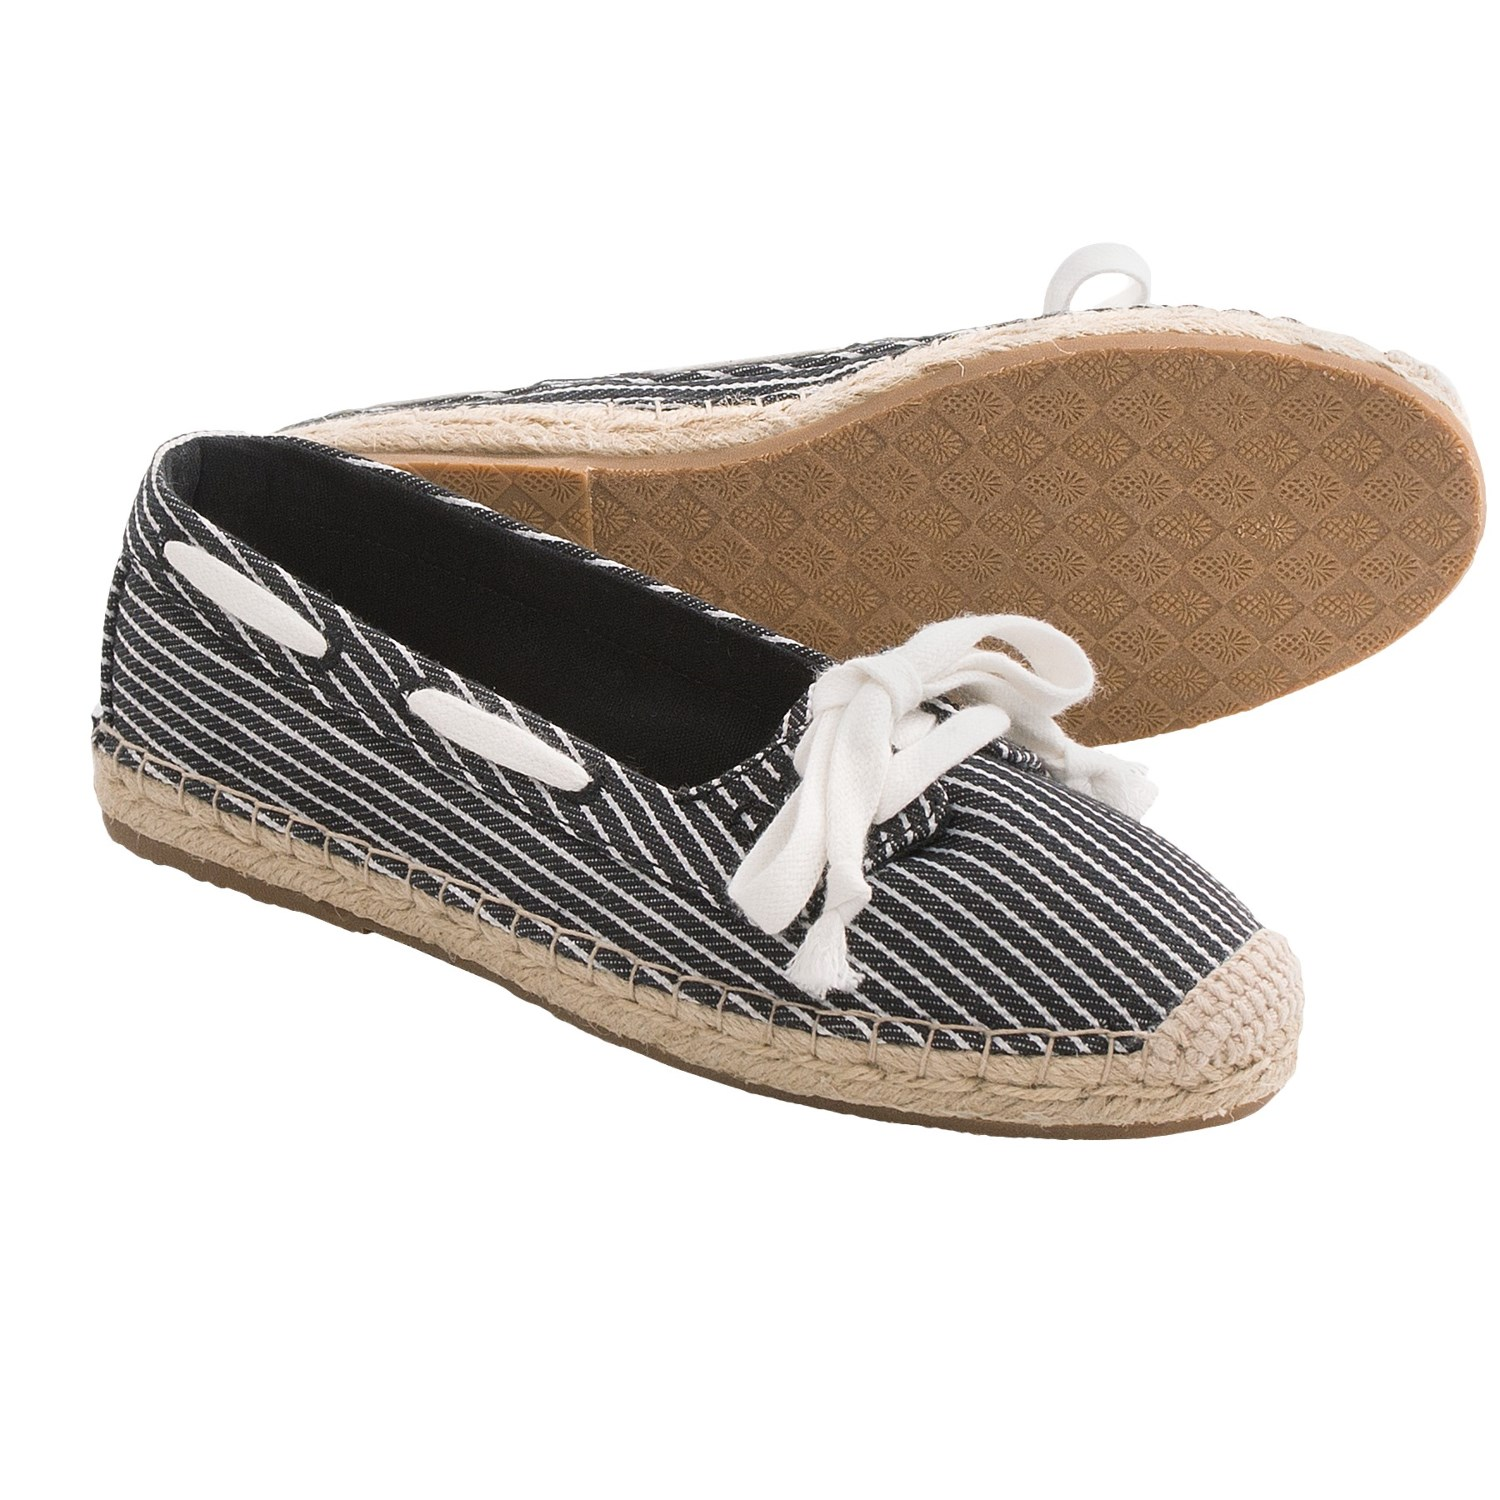 Superdry Espadrille Womens Shoes - Off White/Navy Stripe | Free